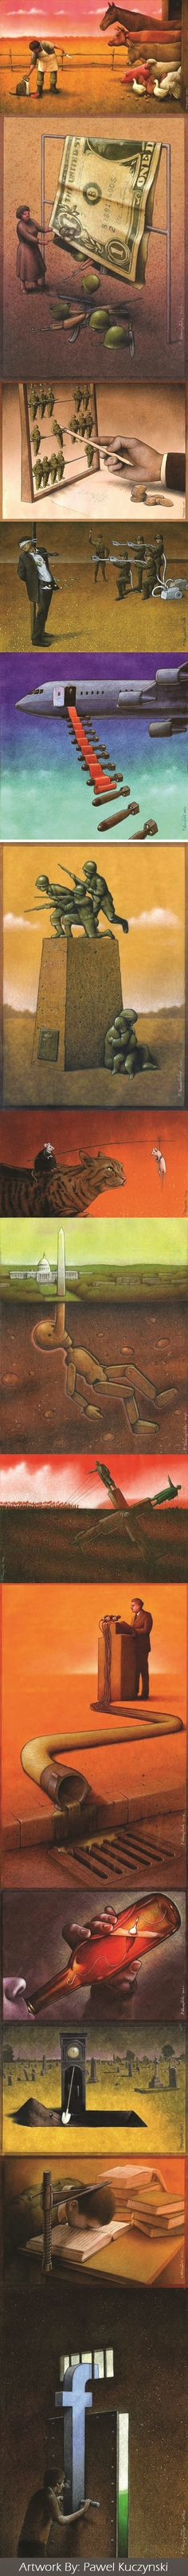 14 Brilliant And Satirical Drawings That Question The World We Live In (By Pawel Kuczynski)